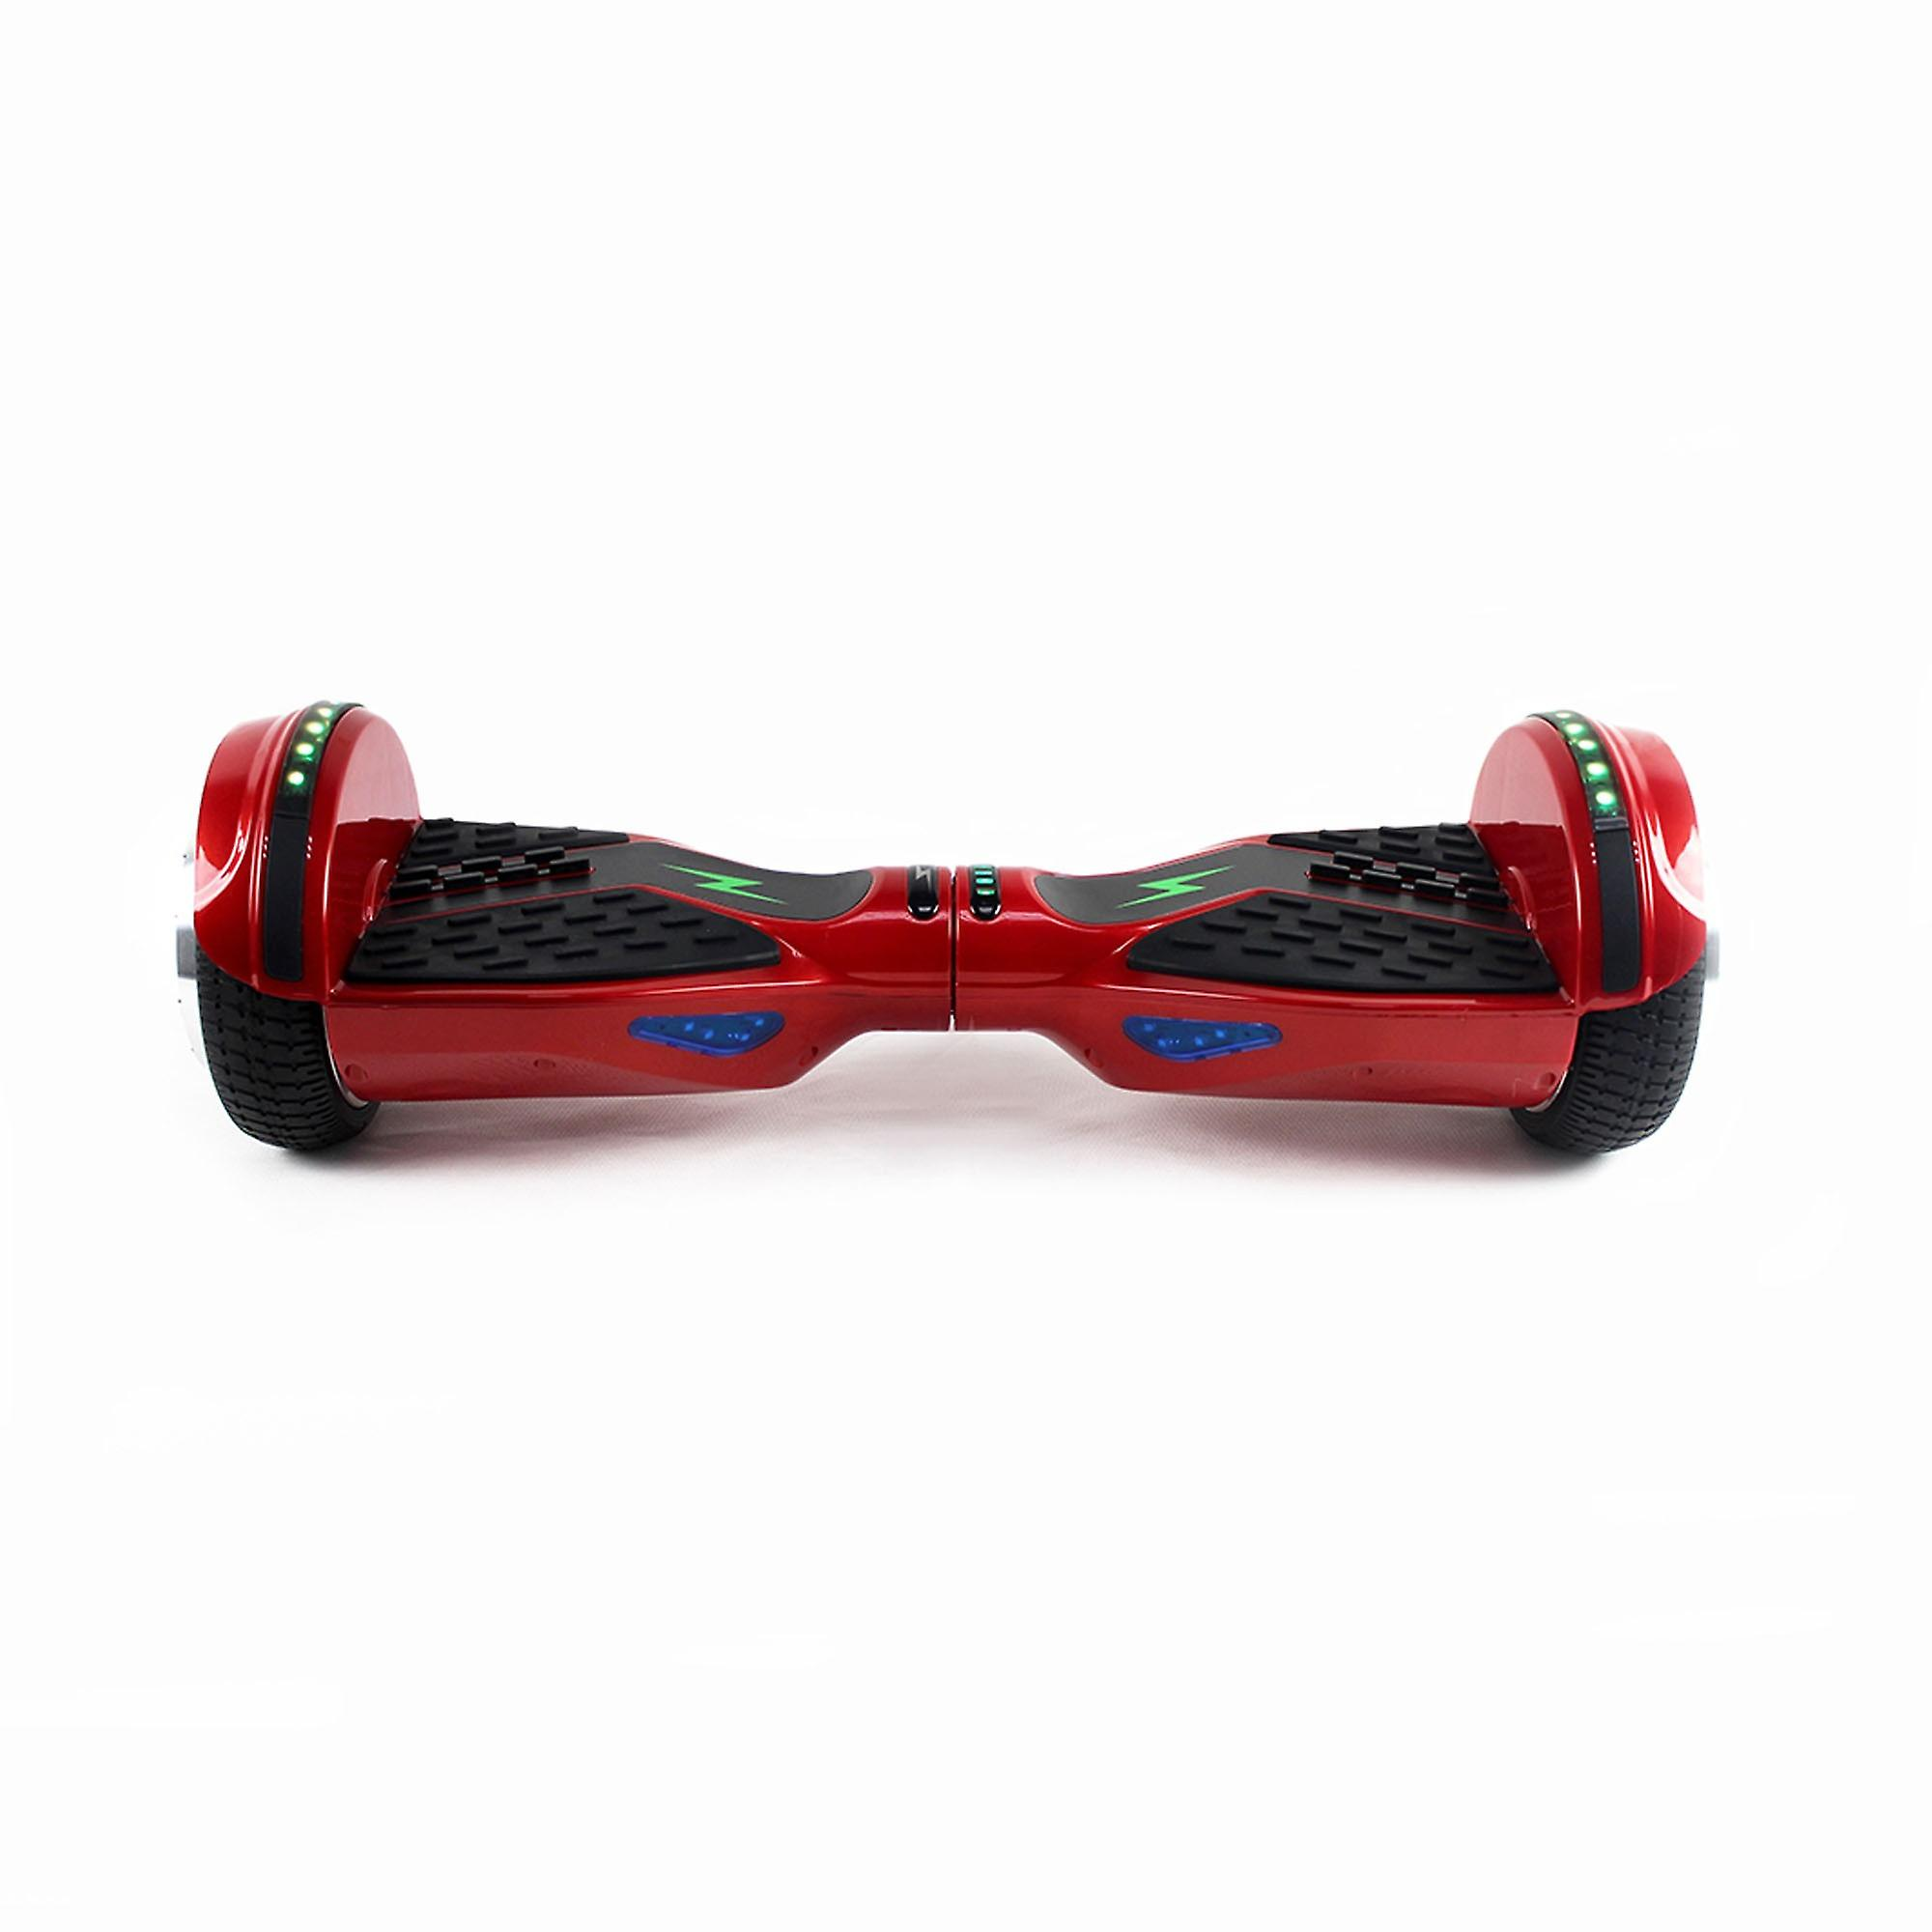 Hoverboard Skateflash K6+n Red